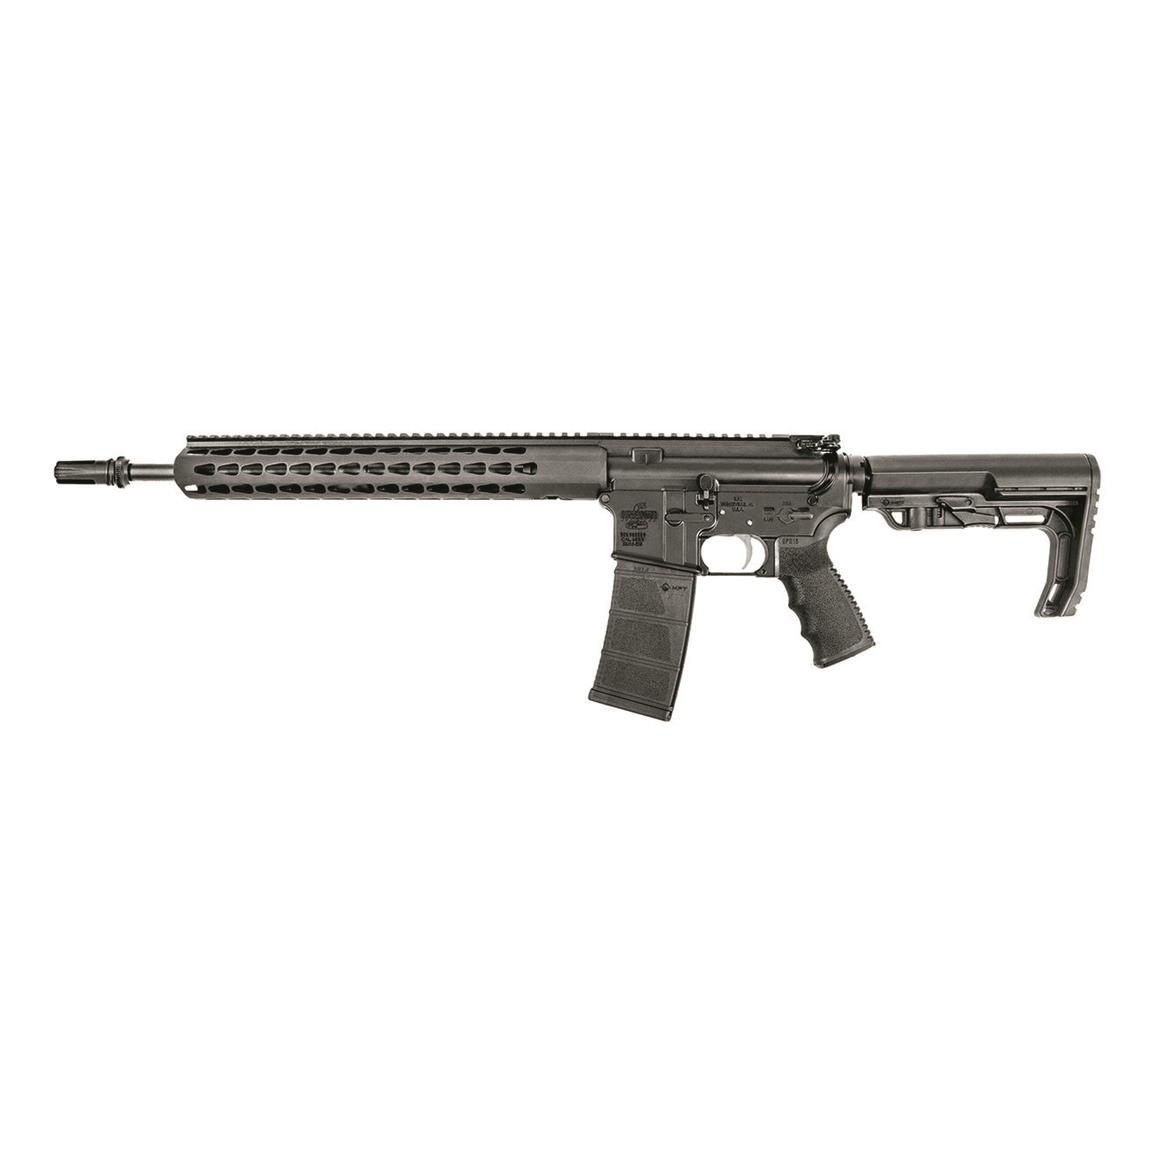 "Bushmaster Minimalist SD A3, Semi-Automatic, .300 AAC Blackout, 16"" Barrel, 30+1 Rounds"